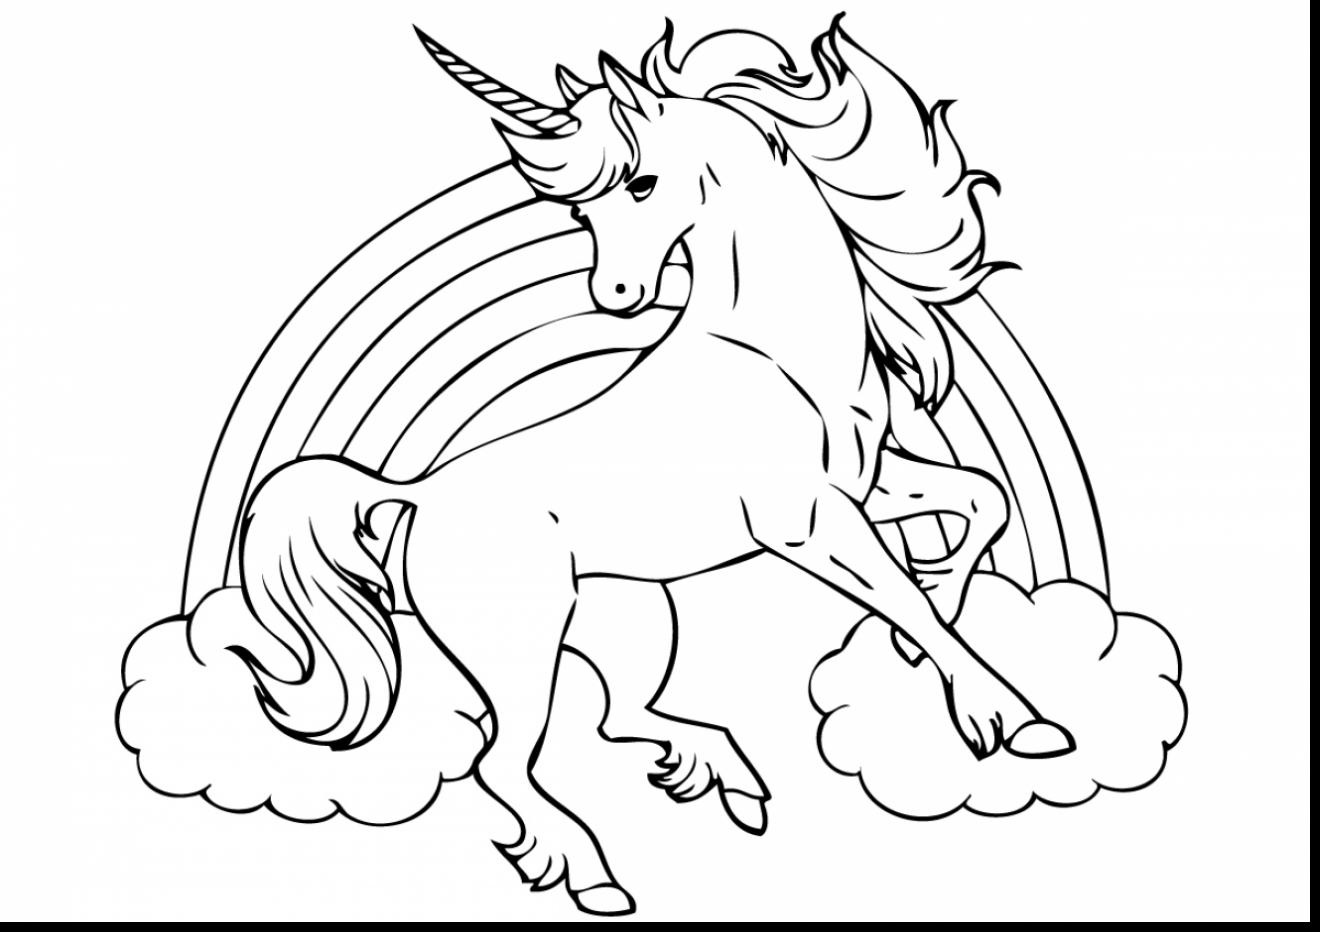 1320x932 Fresh Despicable Me Unicorn Coloring Page Despicable Me Coloring